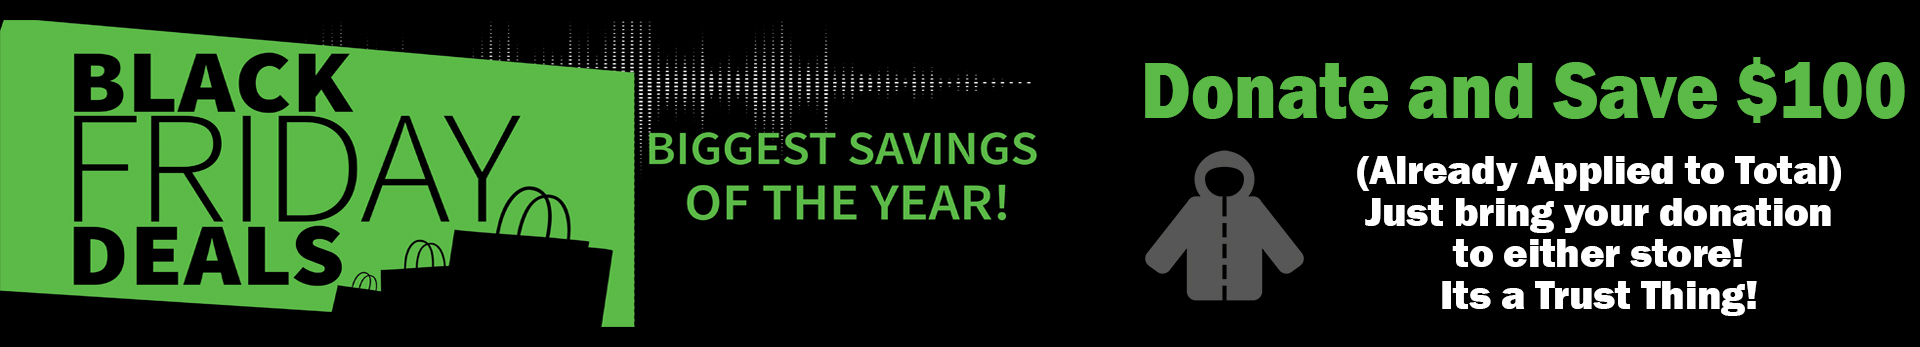 $100 Instant Savings Applied!